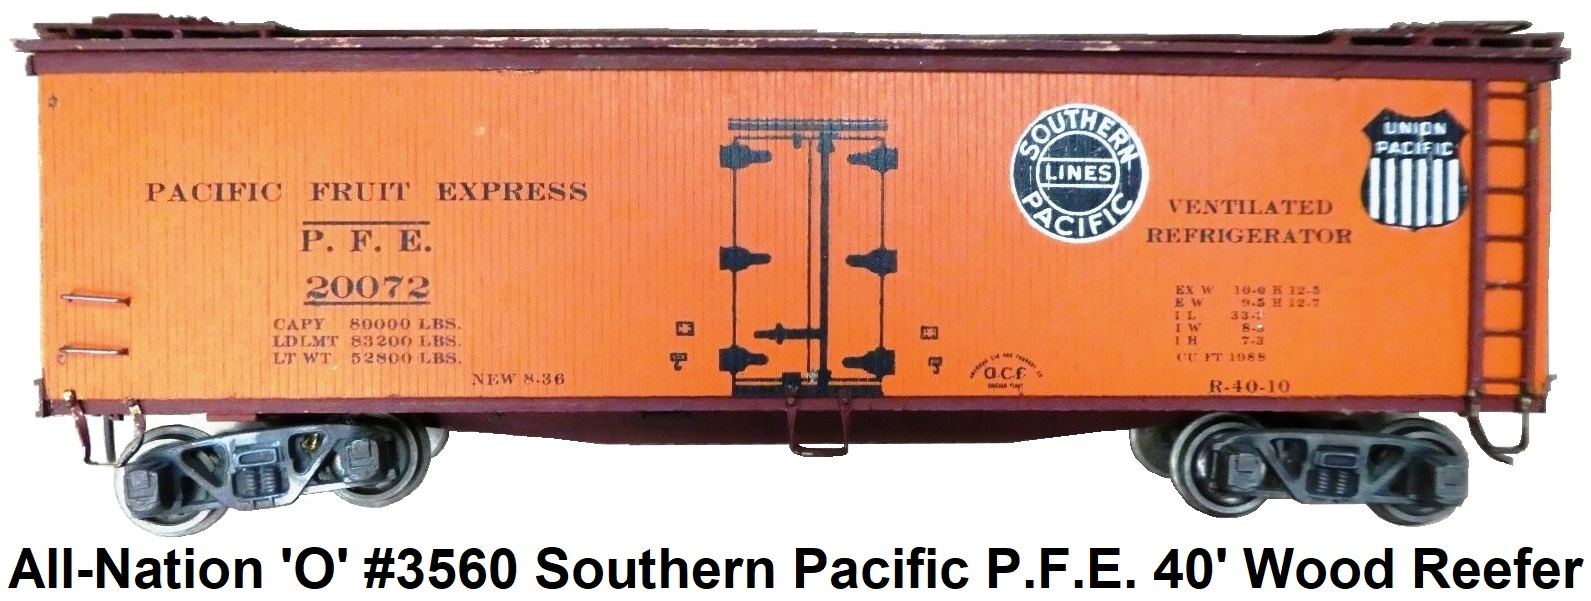 All-Nation 'O' scale 2-rail Kit-built New York Central MDT Tin Plate Reefer #9000